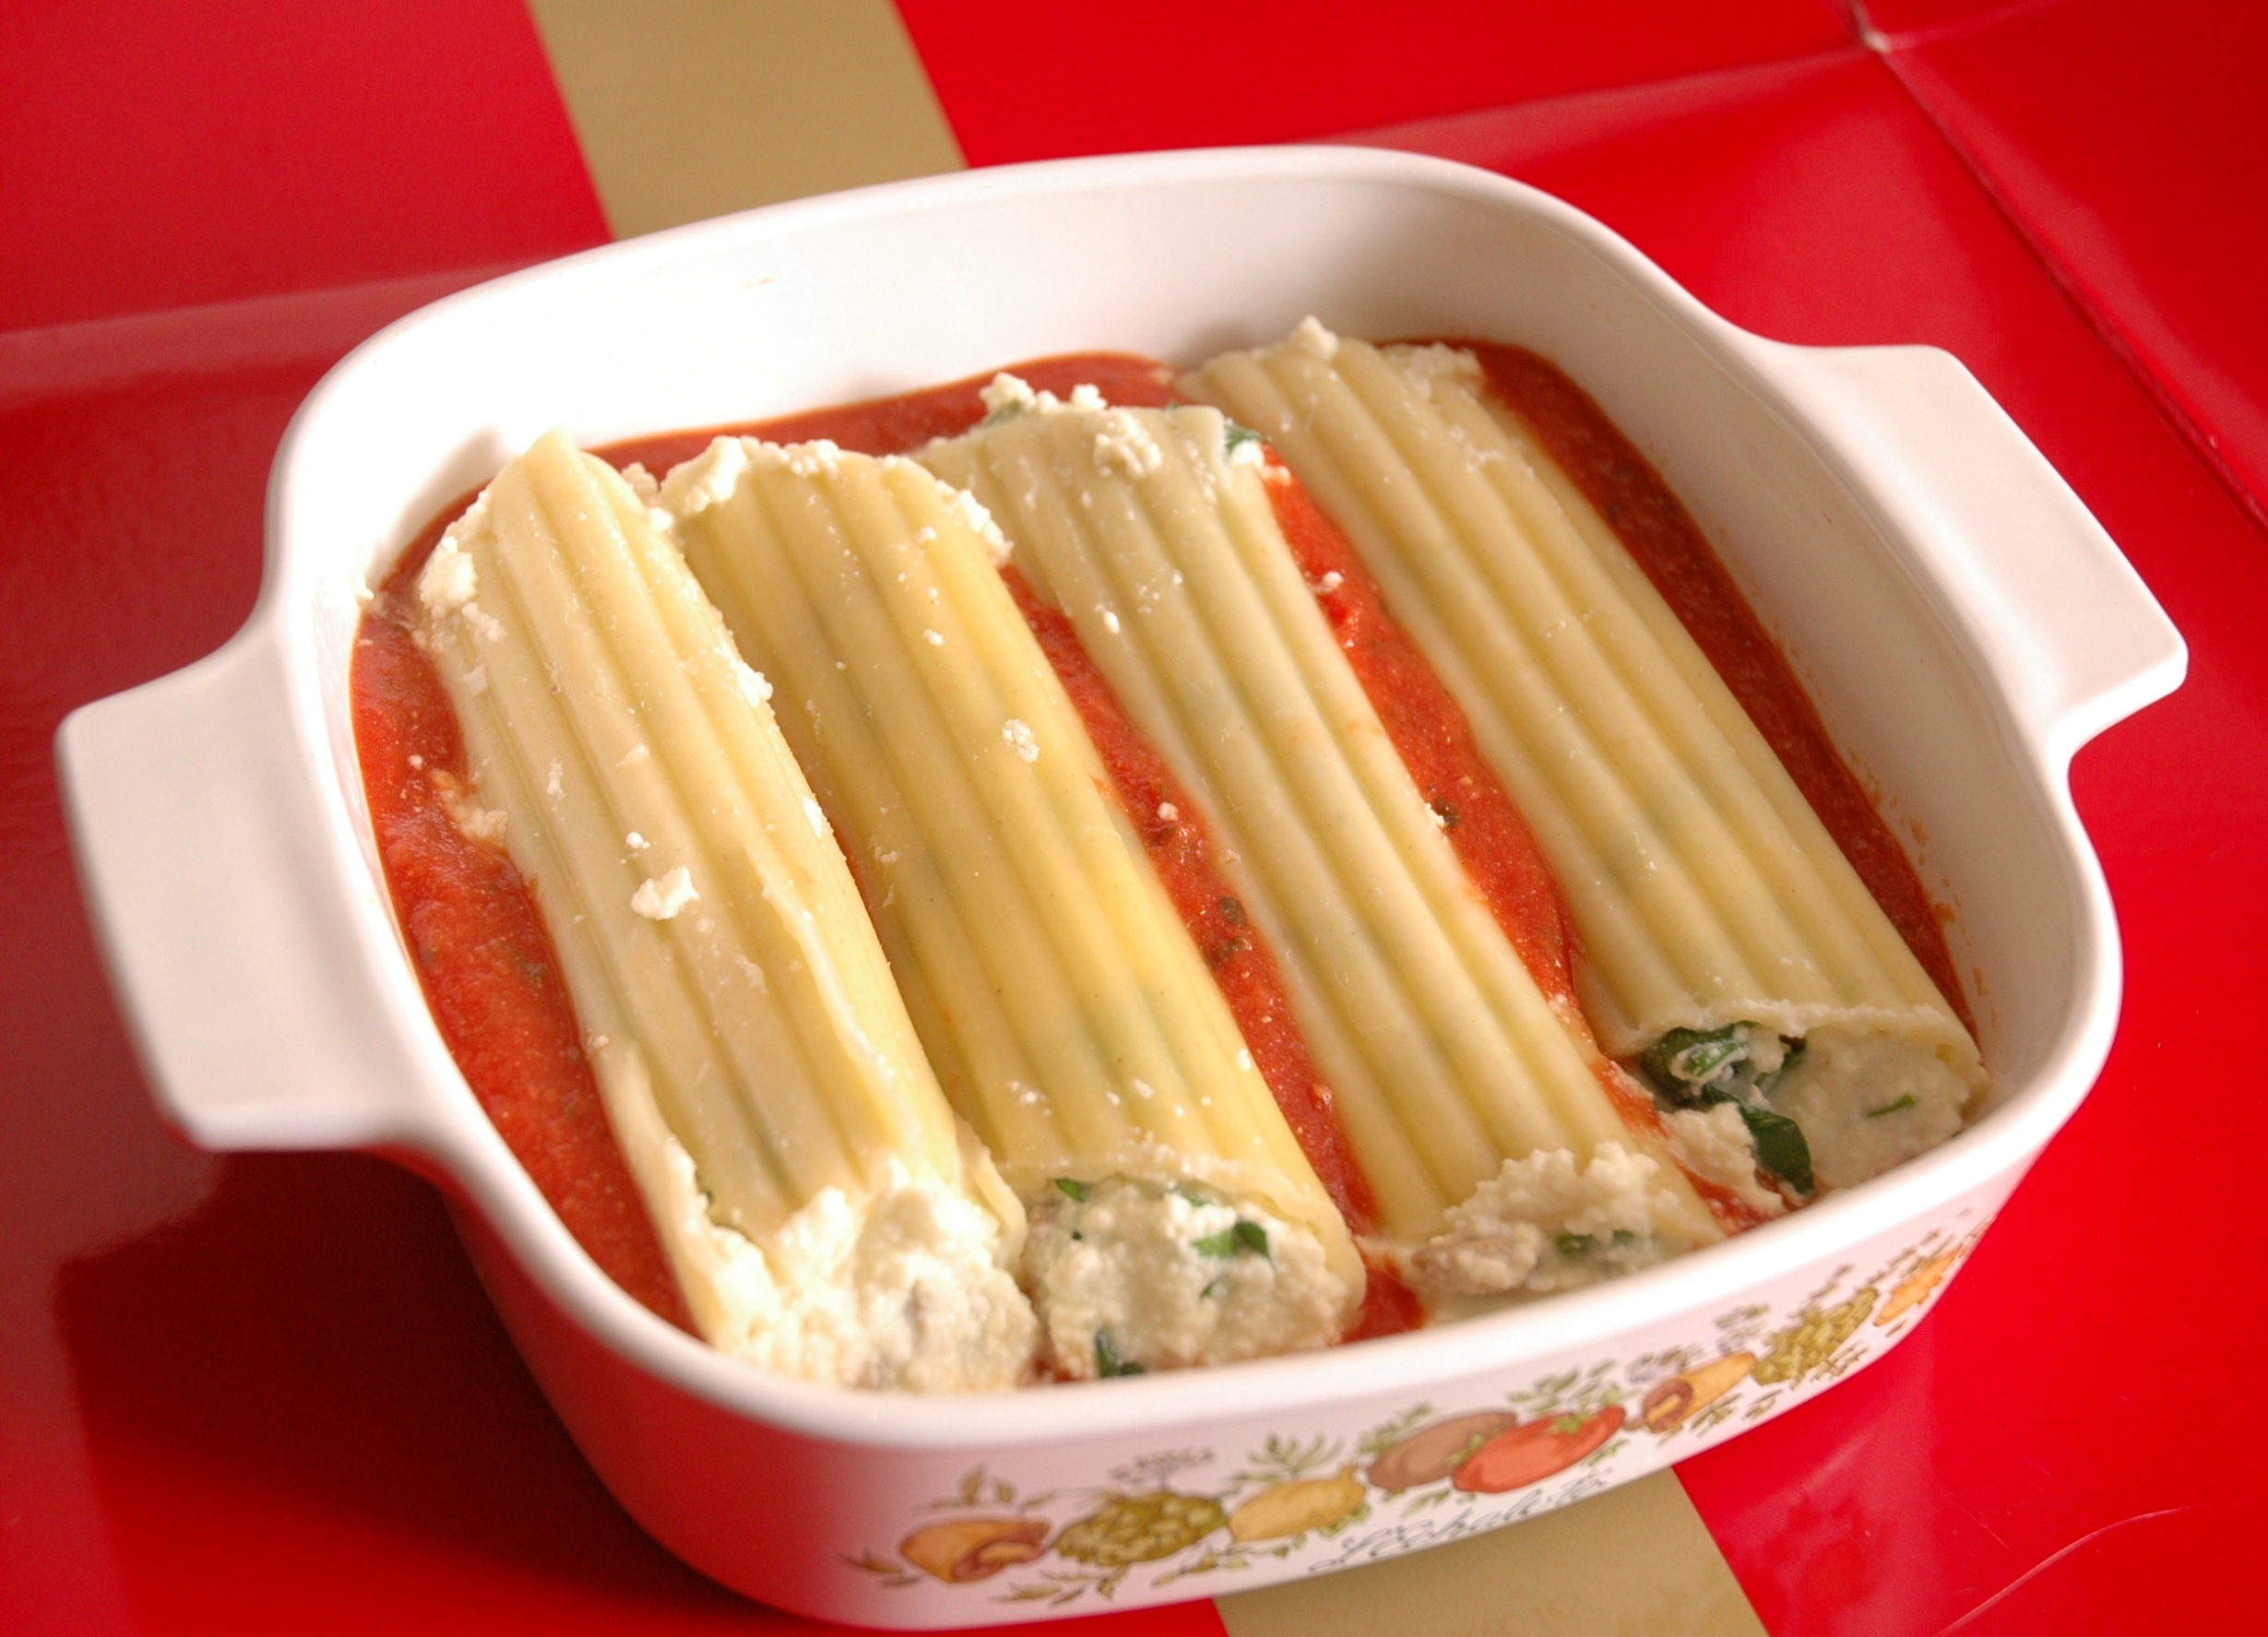 Manicotti stuffed with spinach & ricotta |